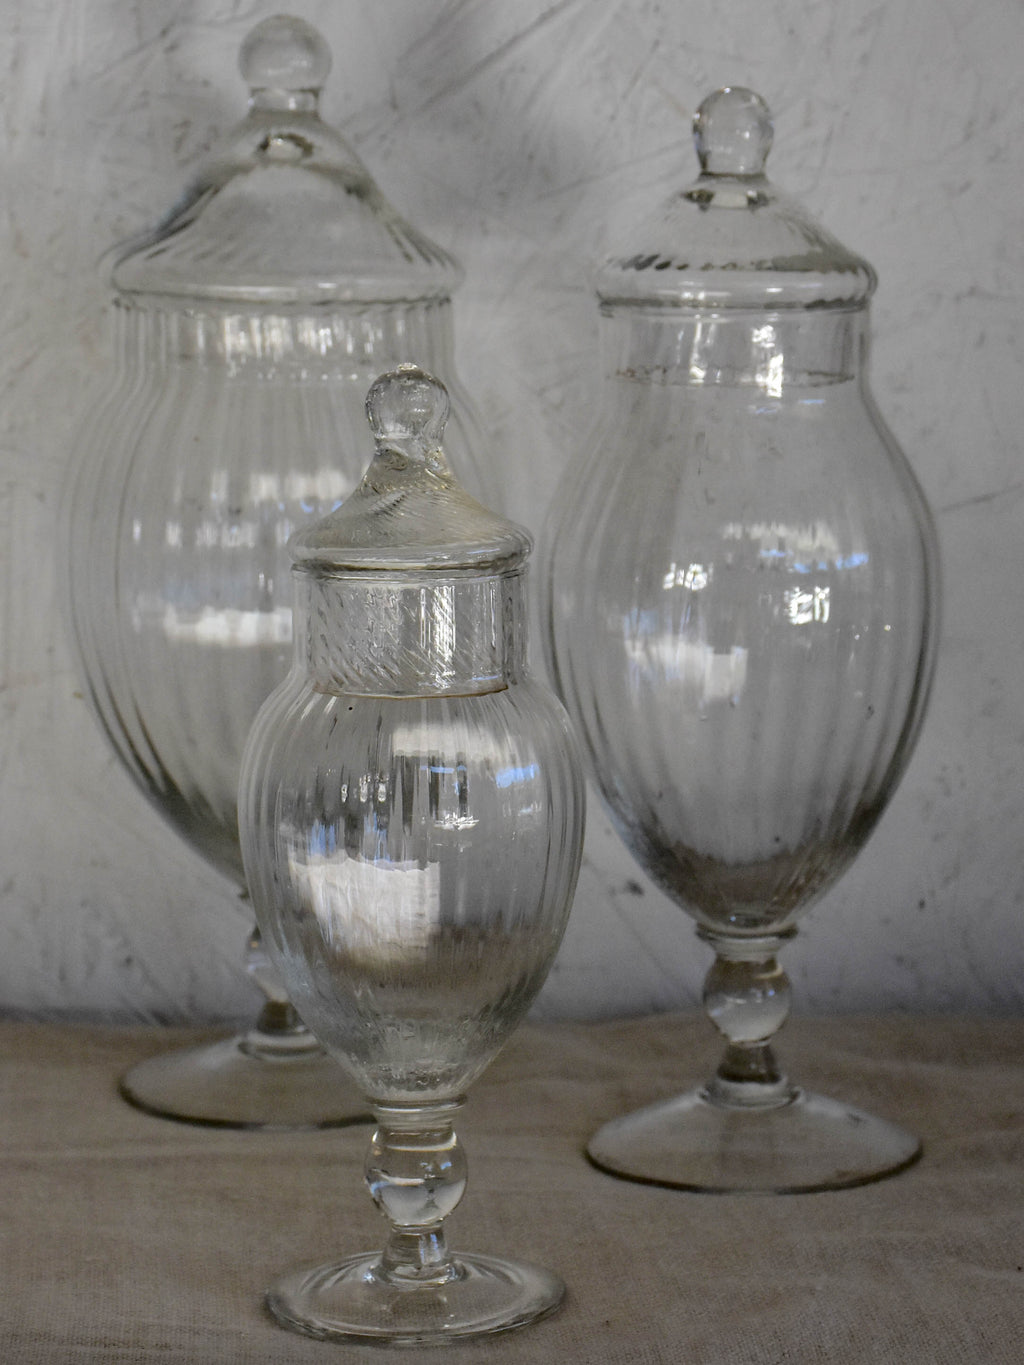 Three vintage French glass vanity jars with lids